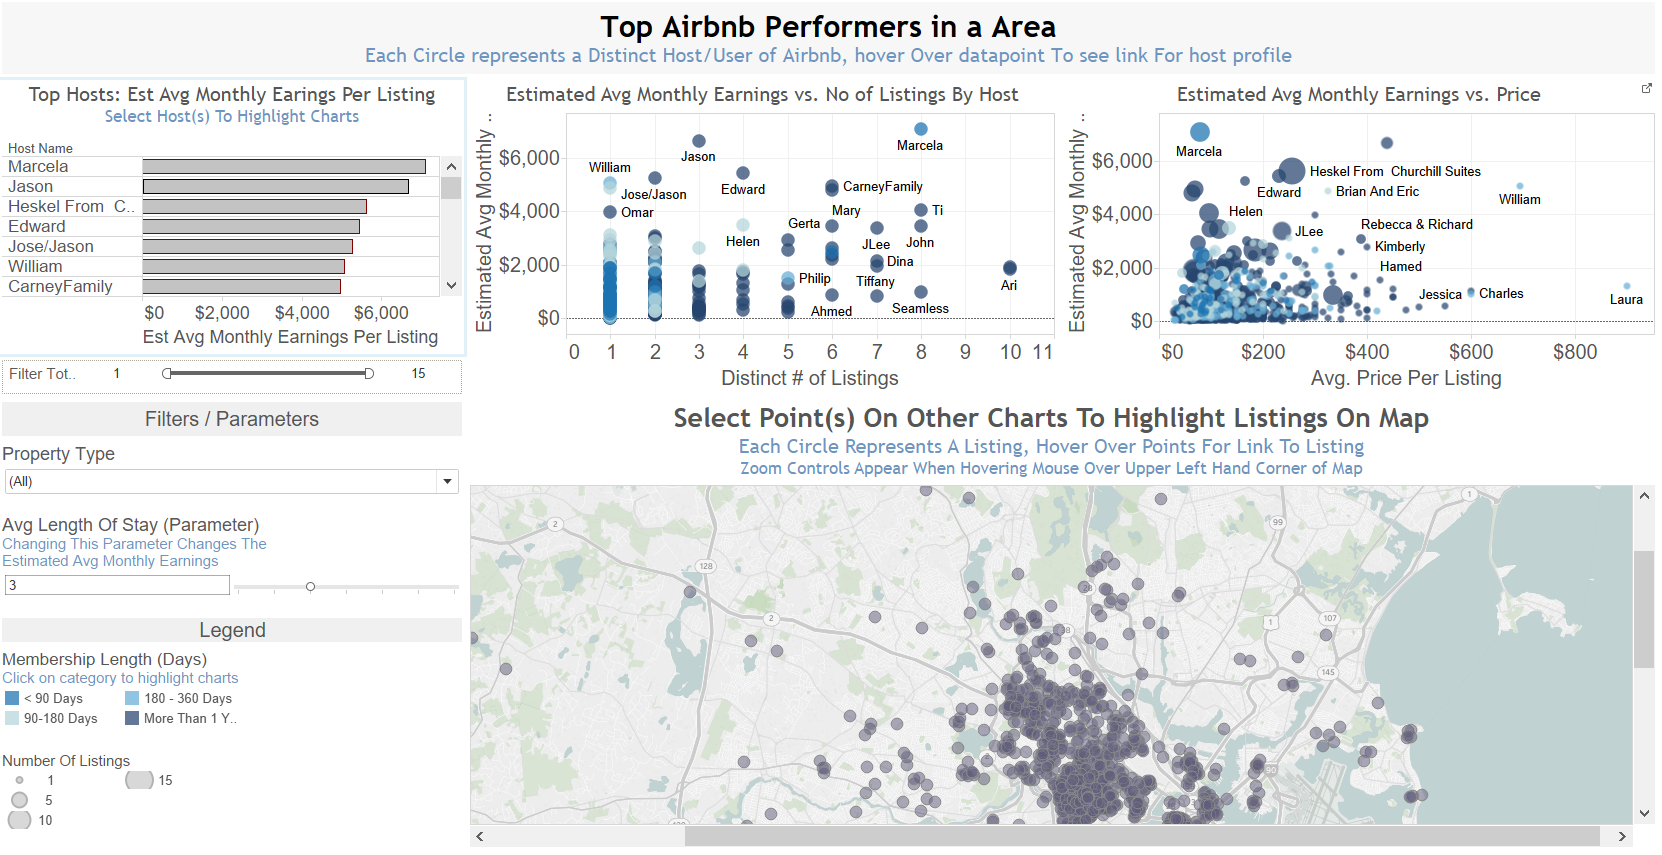 Airbnb Top Performance